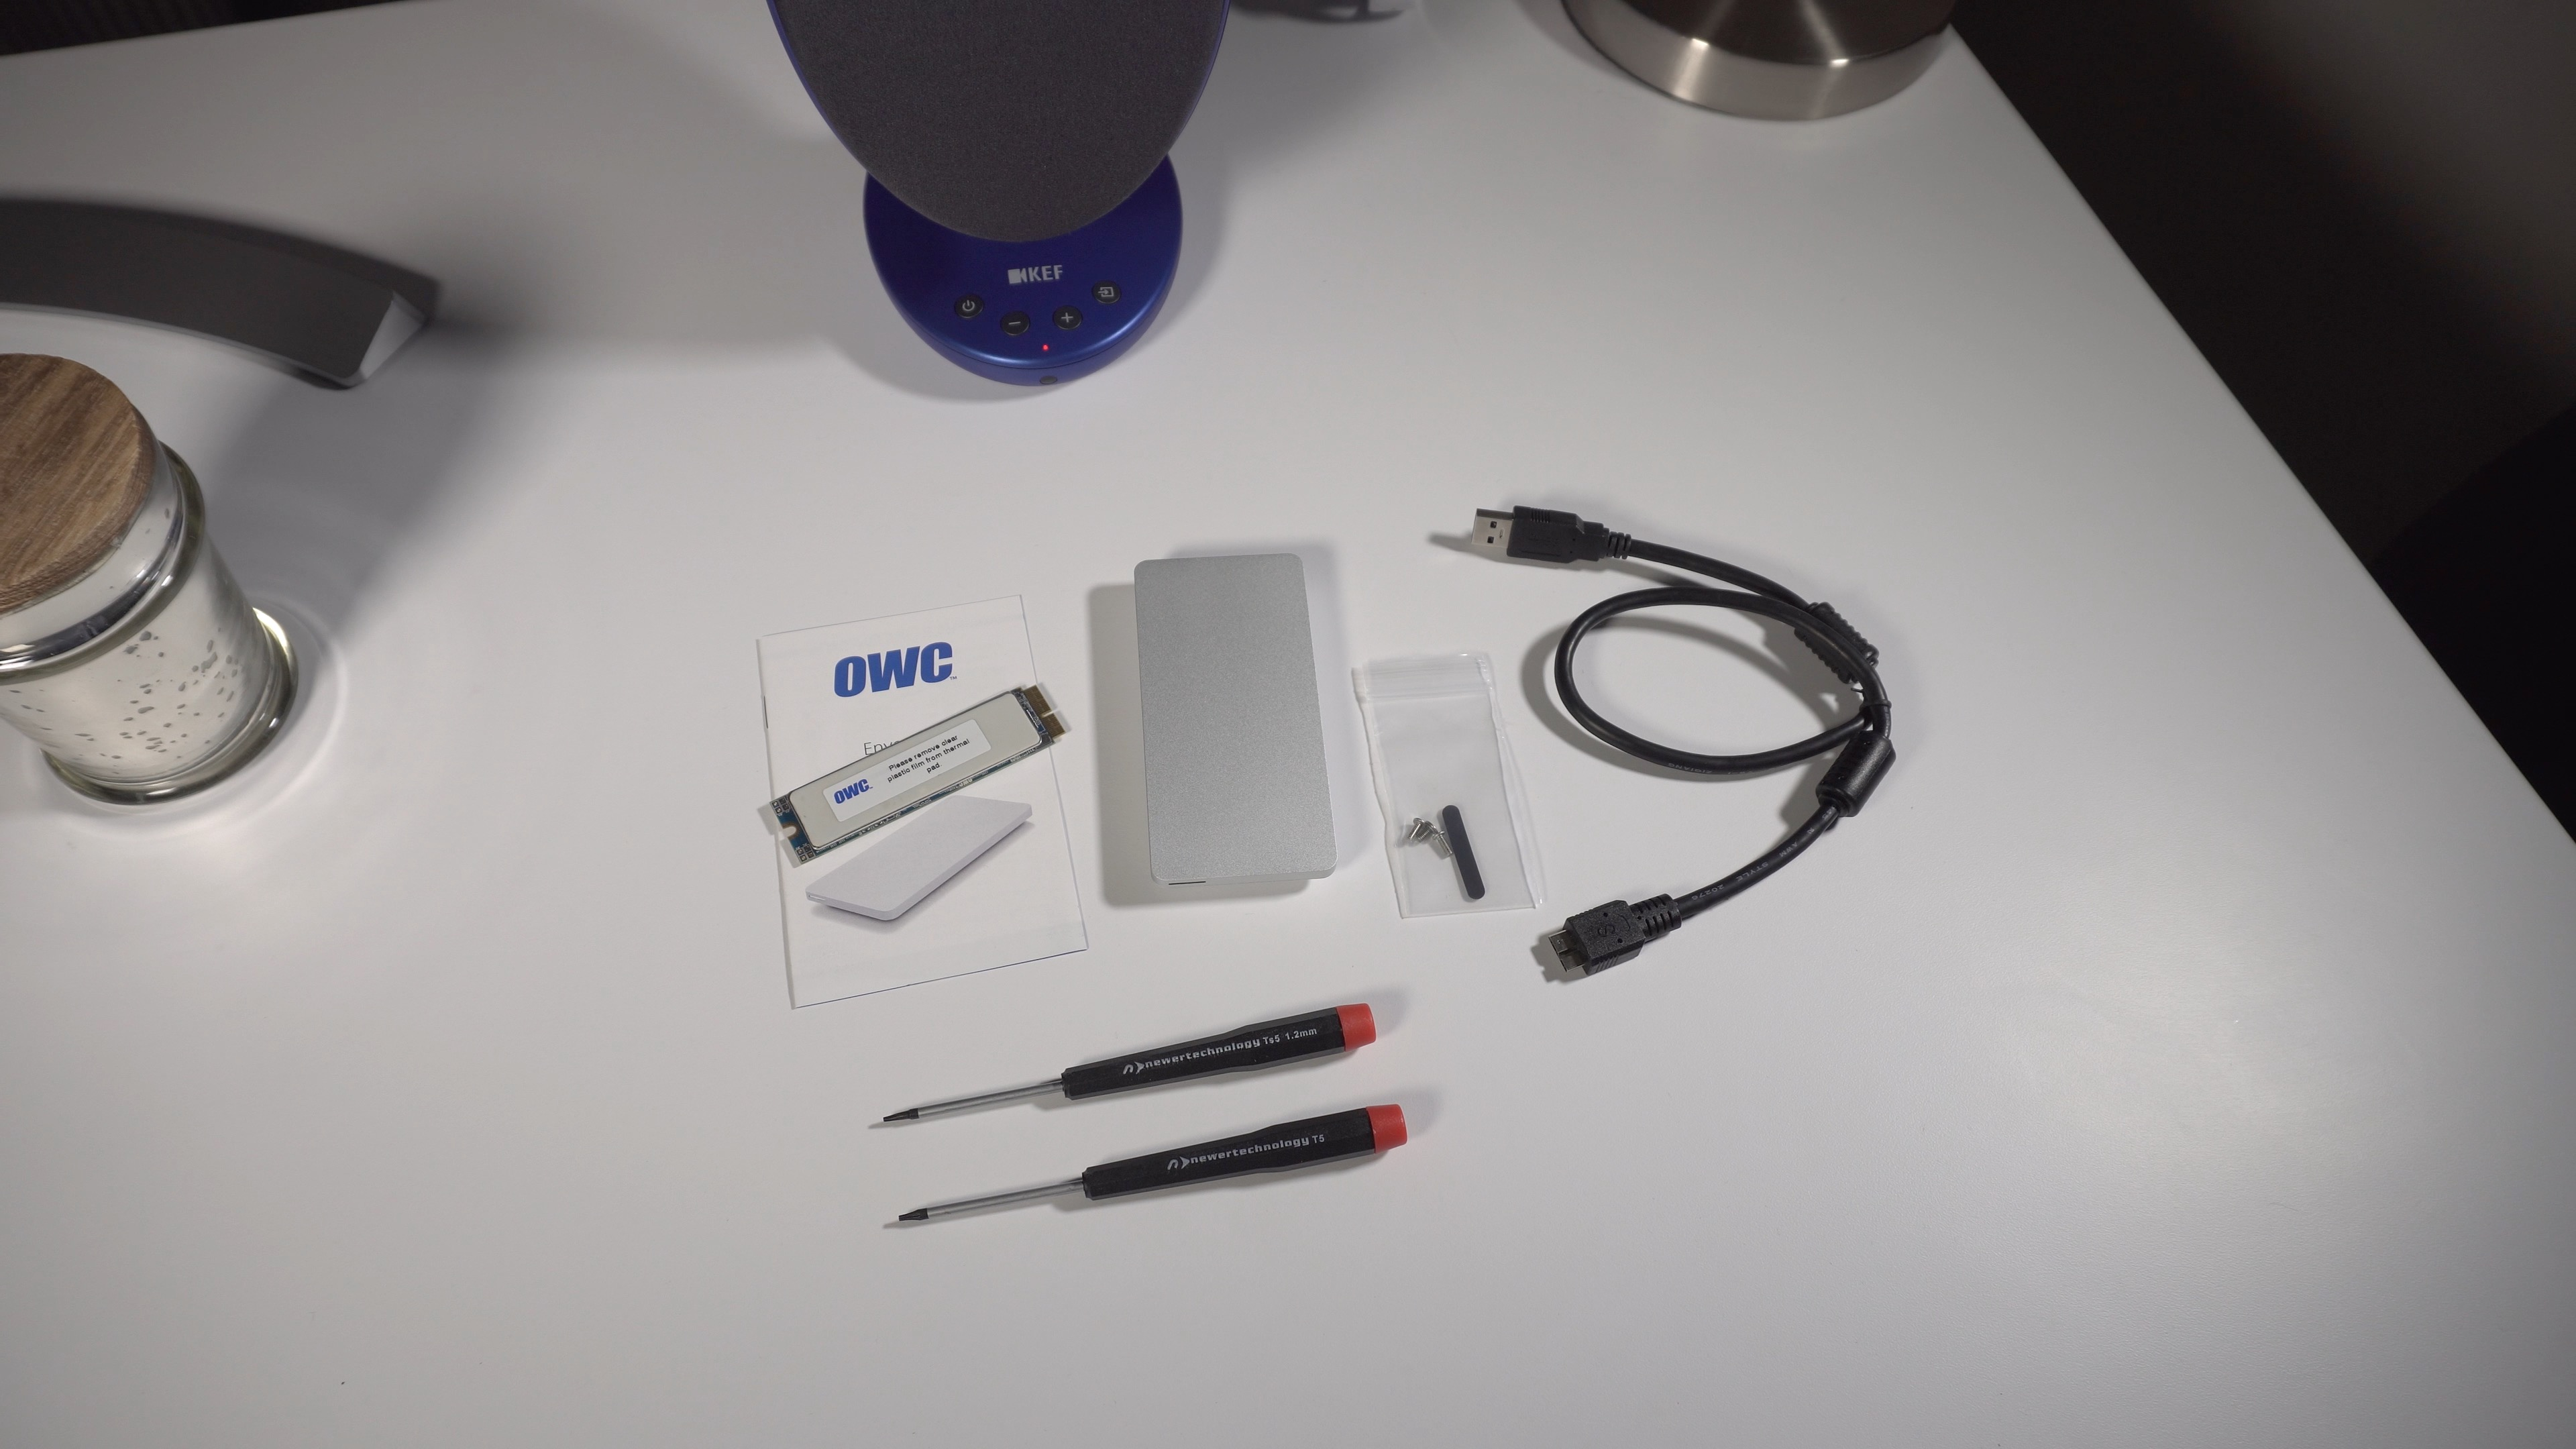 Review Owc S Aura Pcie Flash Storage Lets You Upgrade The Storage Capacity Of Your Mid 2013 And Later Macbook U Now Works With Boot Camp 9to5mac